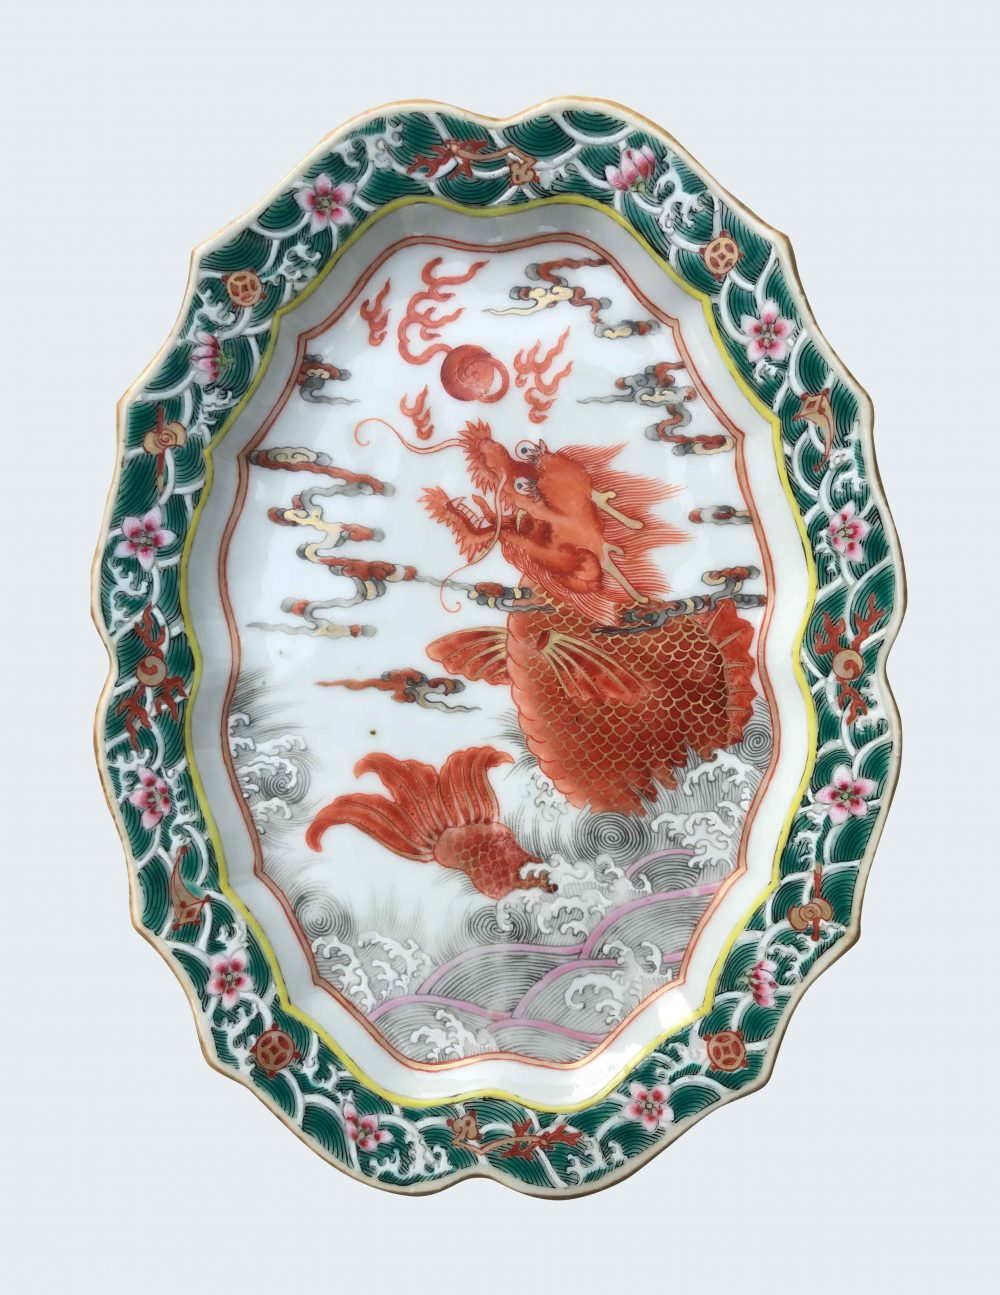 Famille rose Porcelain Late Qianlong (1735-1795), circa 1780, China